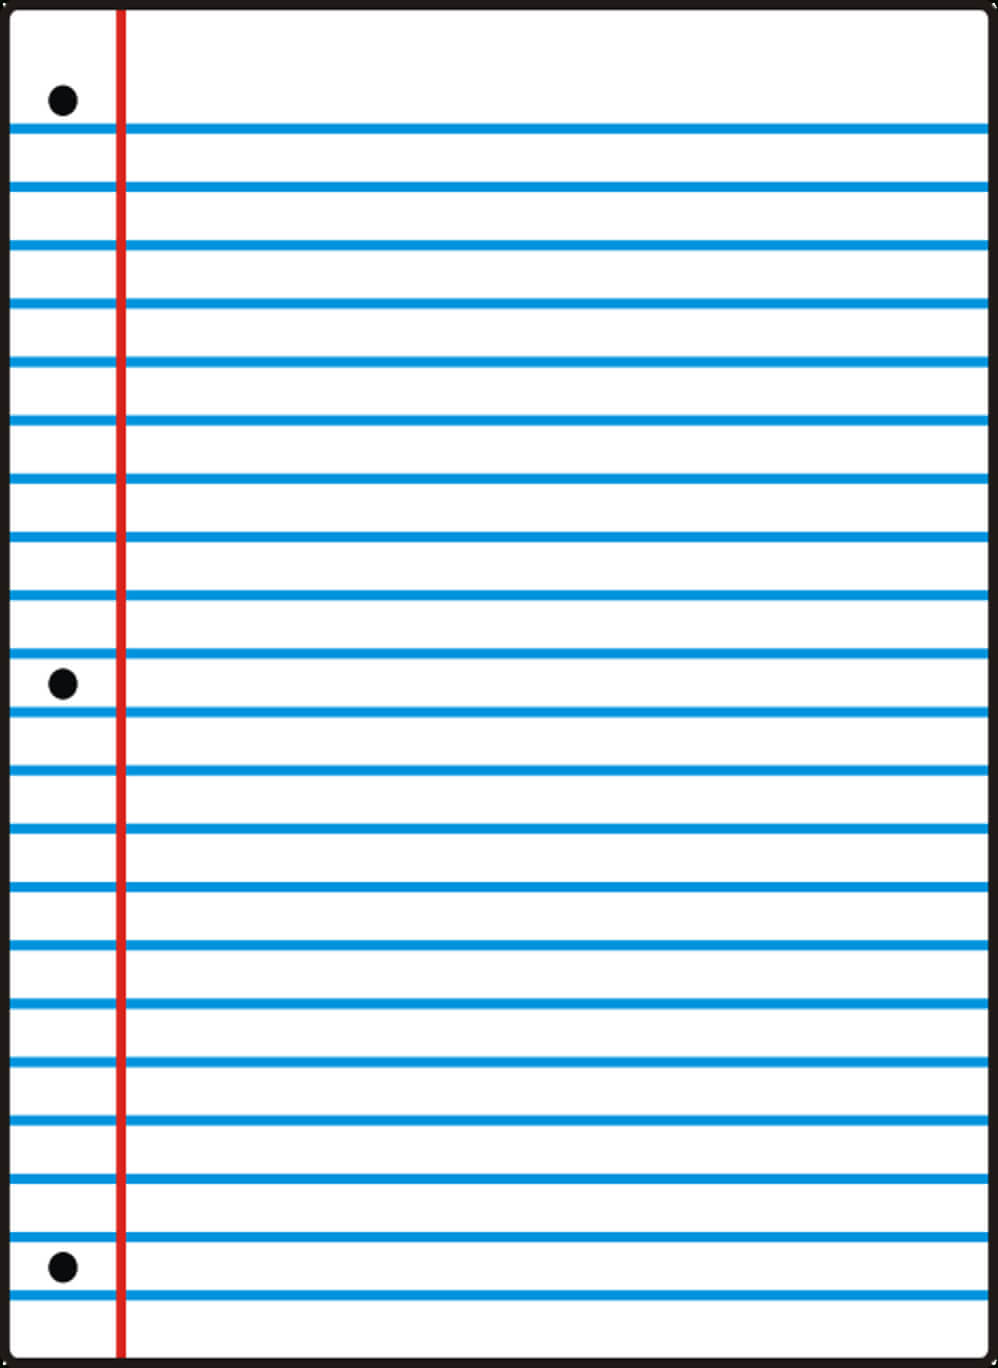 Notebook Paper Template For Word - Clip Art Library for Notebook Paper Template For Word